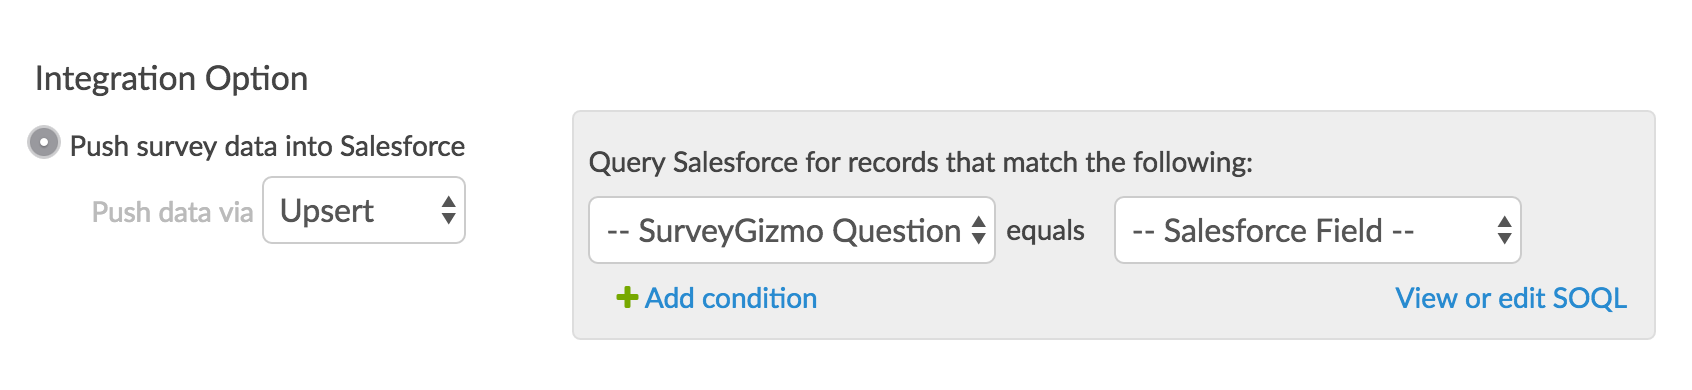 Query Salesforce for records that match the following